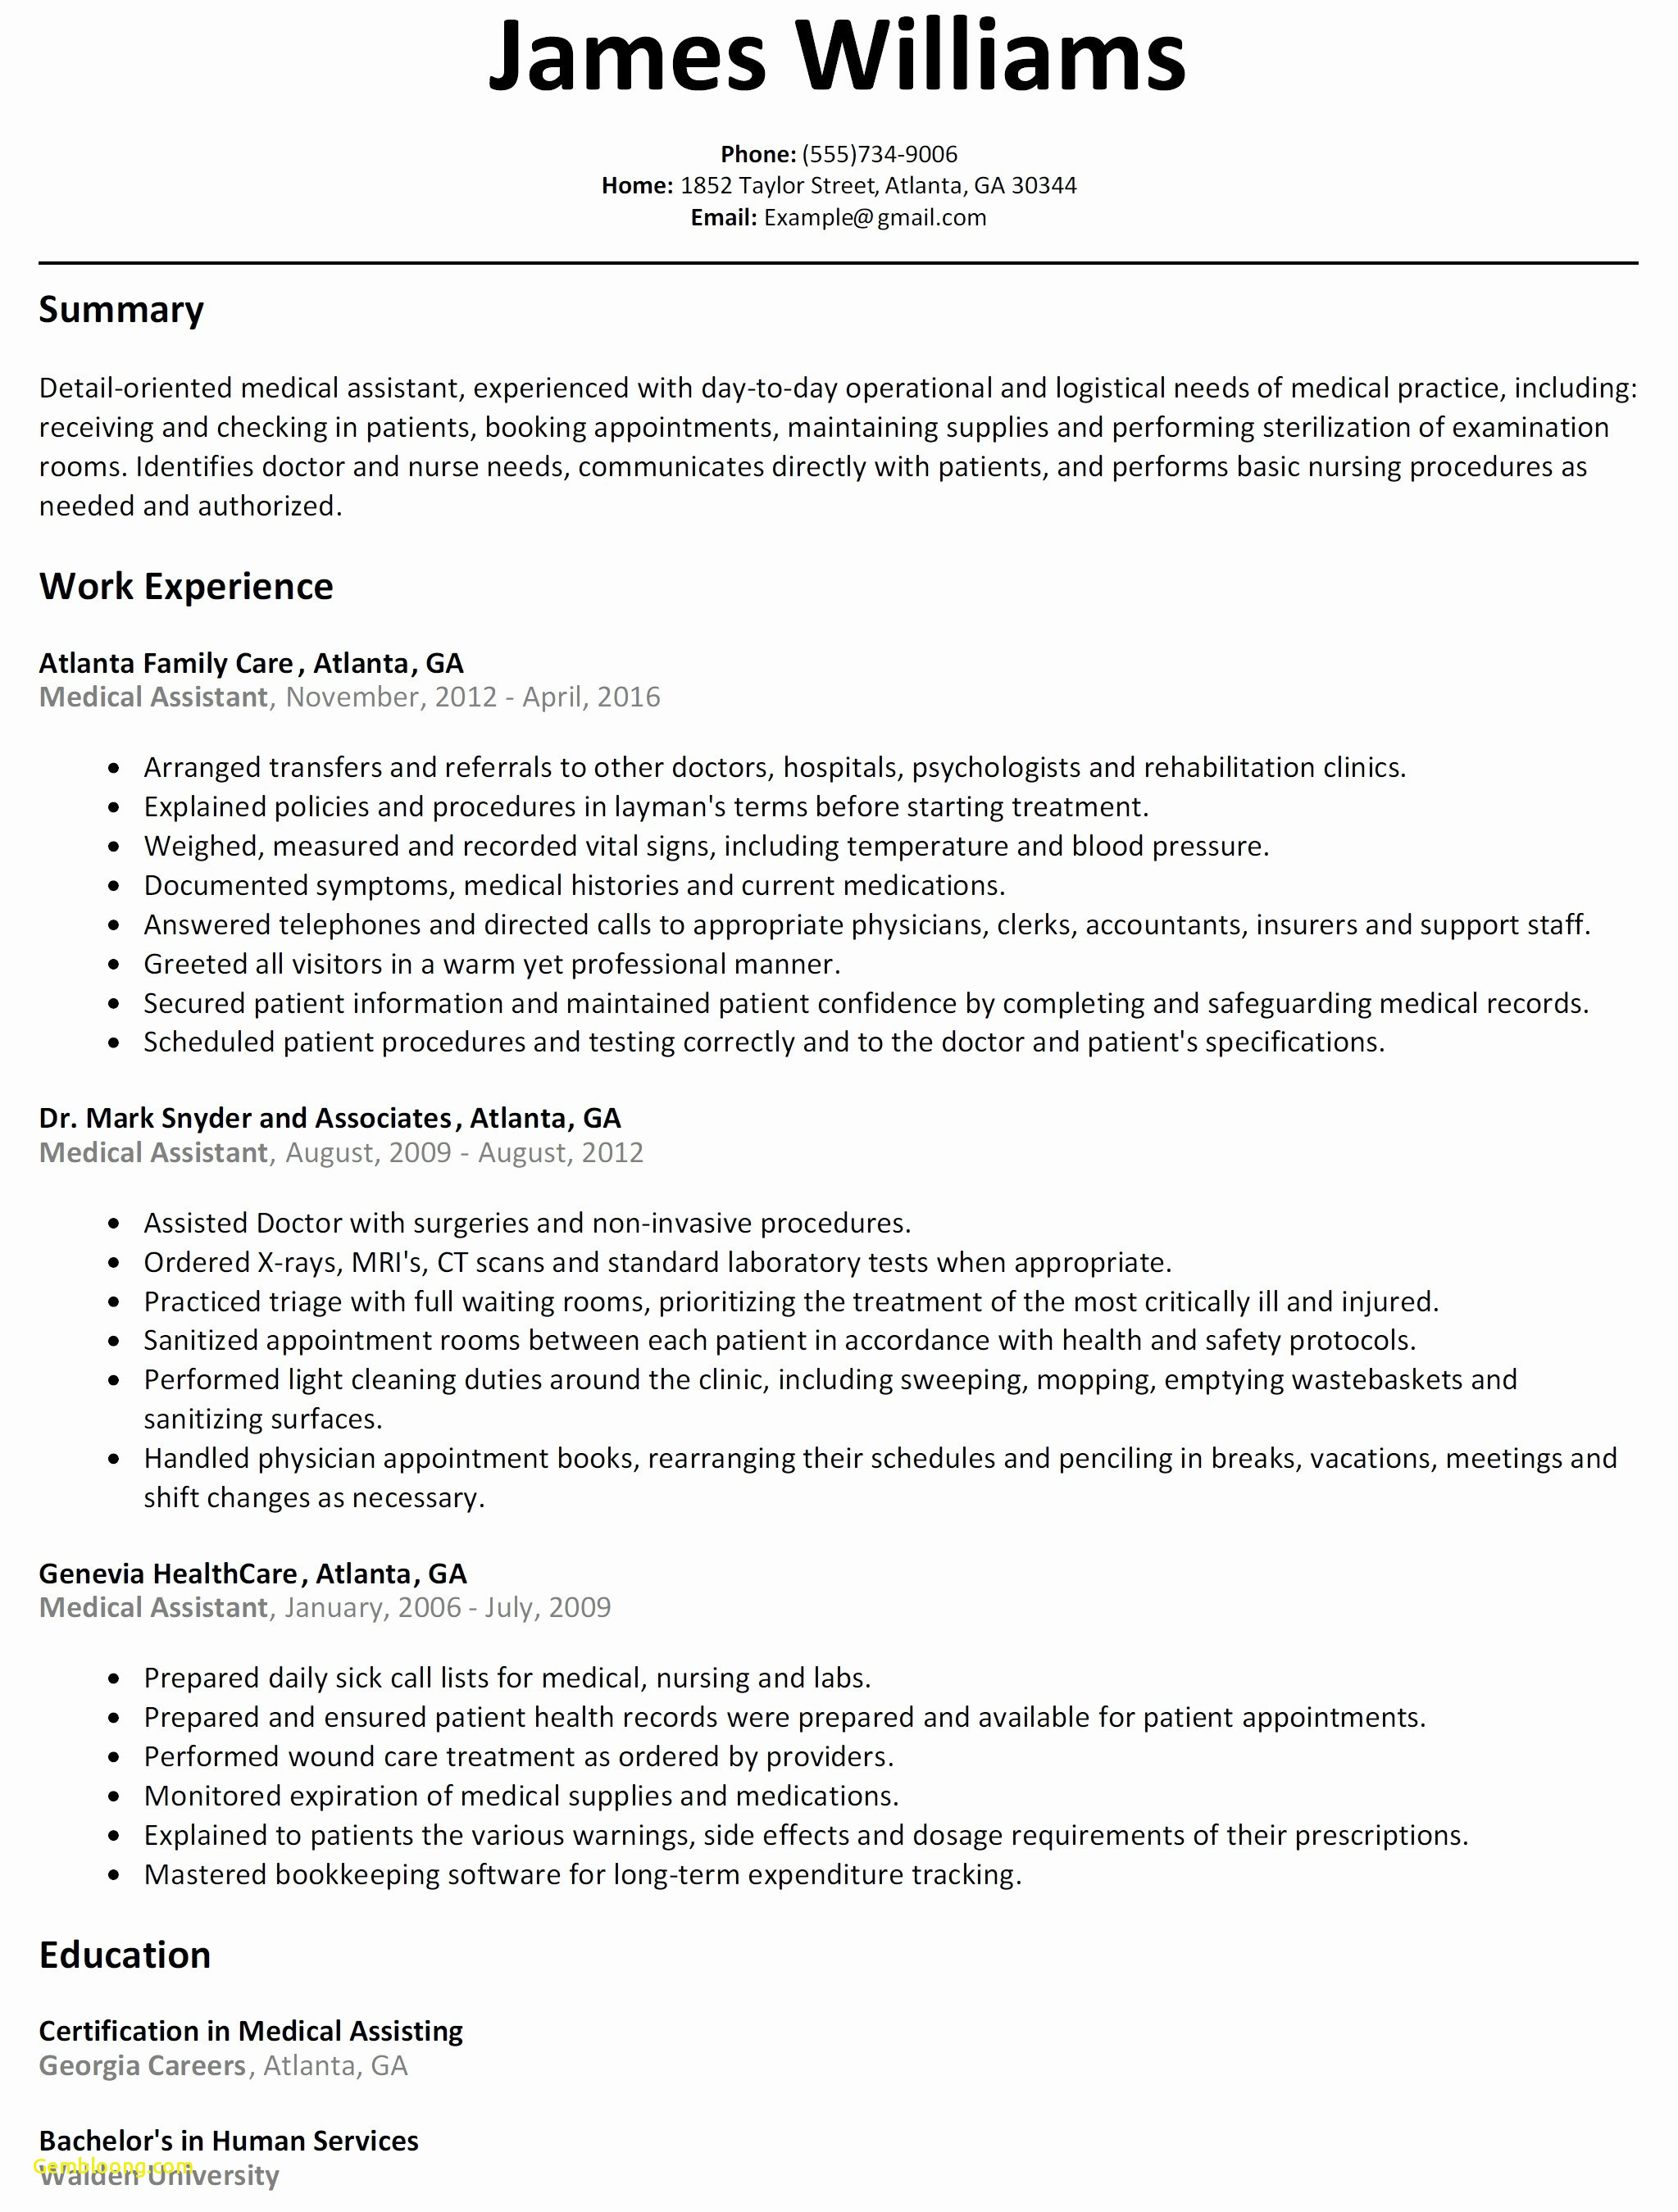 Bartending Responsibilities for A Resume - New Bartending Resume